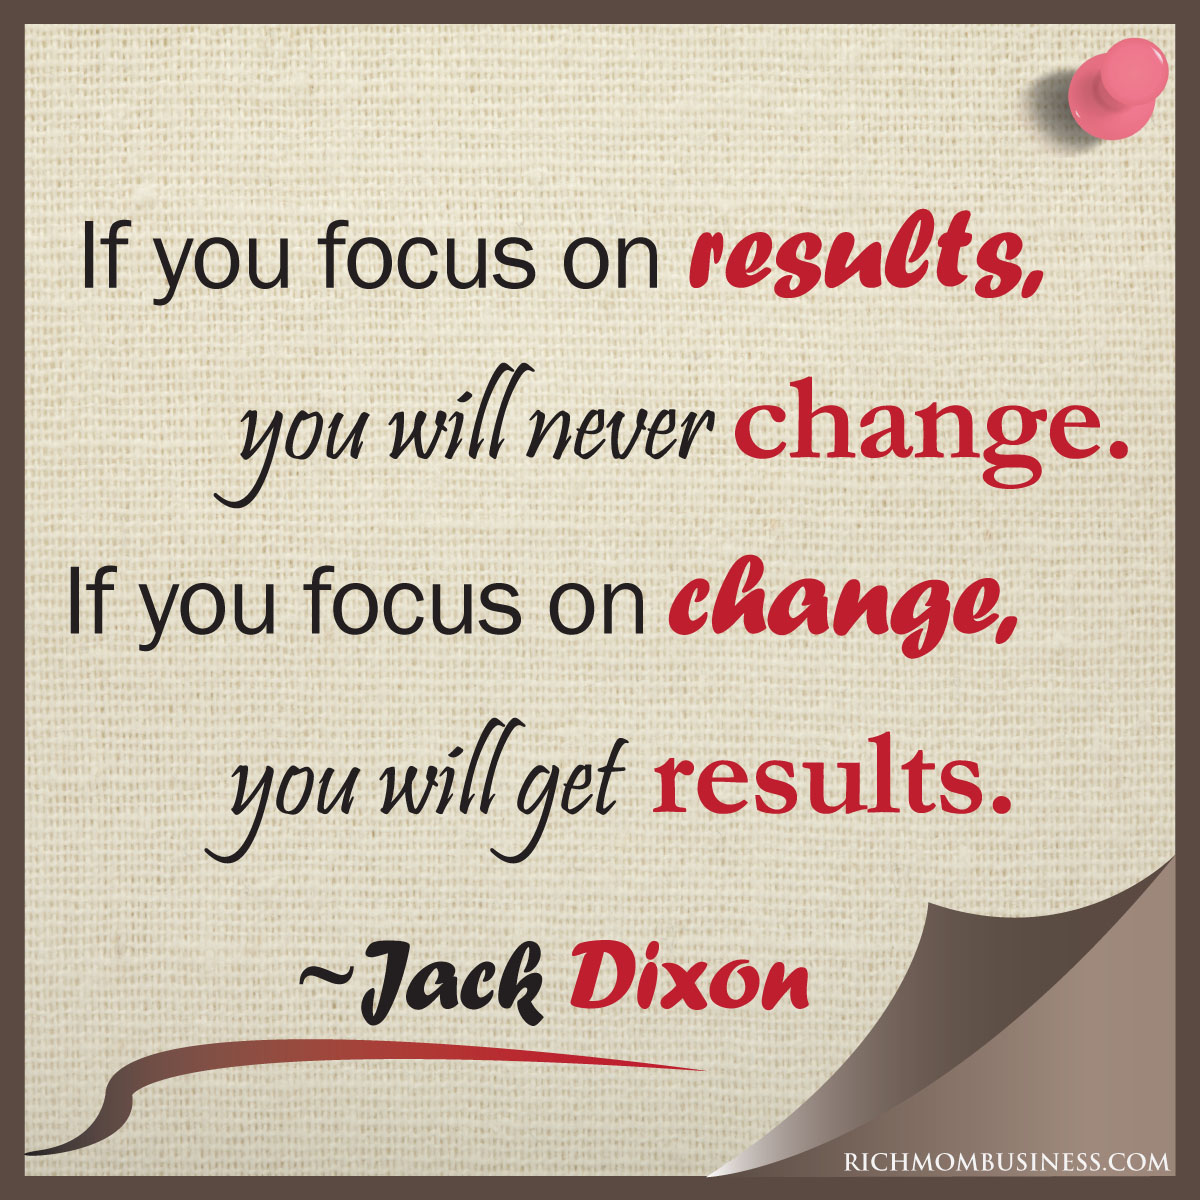 If You Focus On Results, You Will Never Change. If You Focus On Change, You Will Get Results